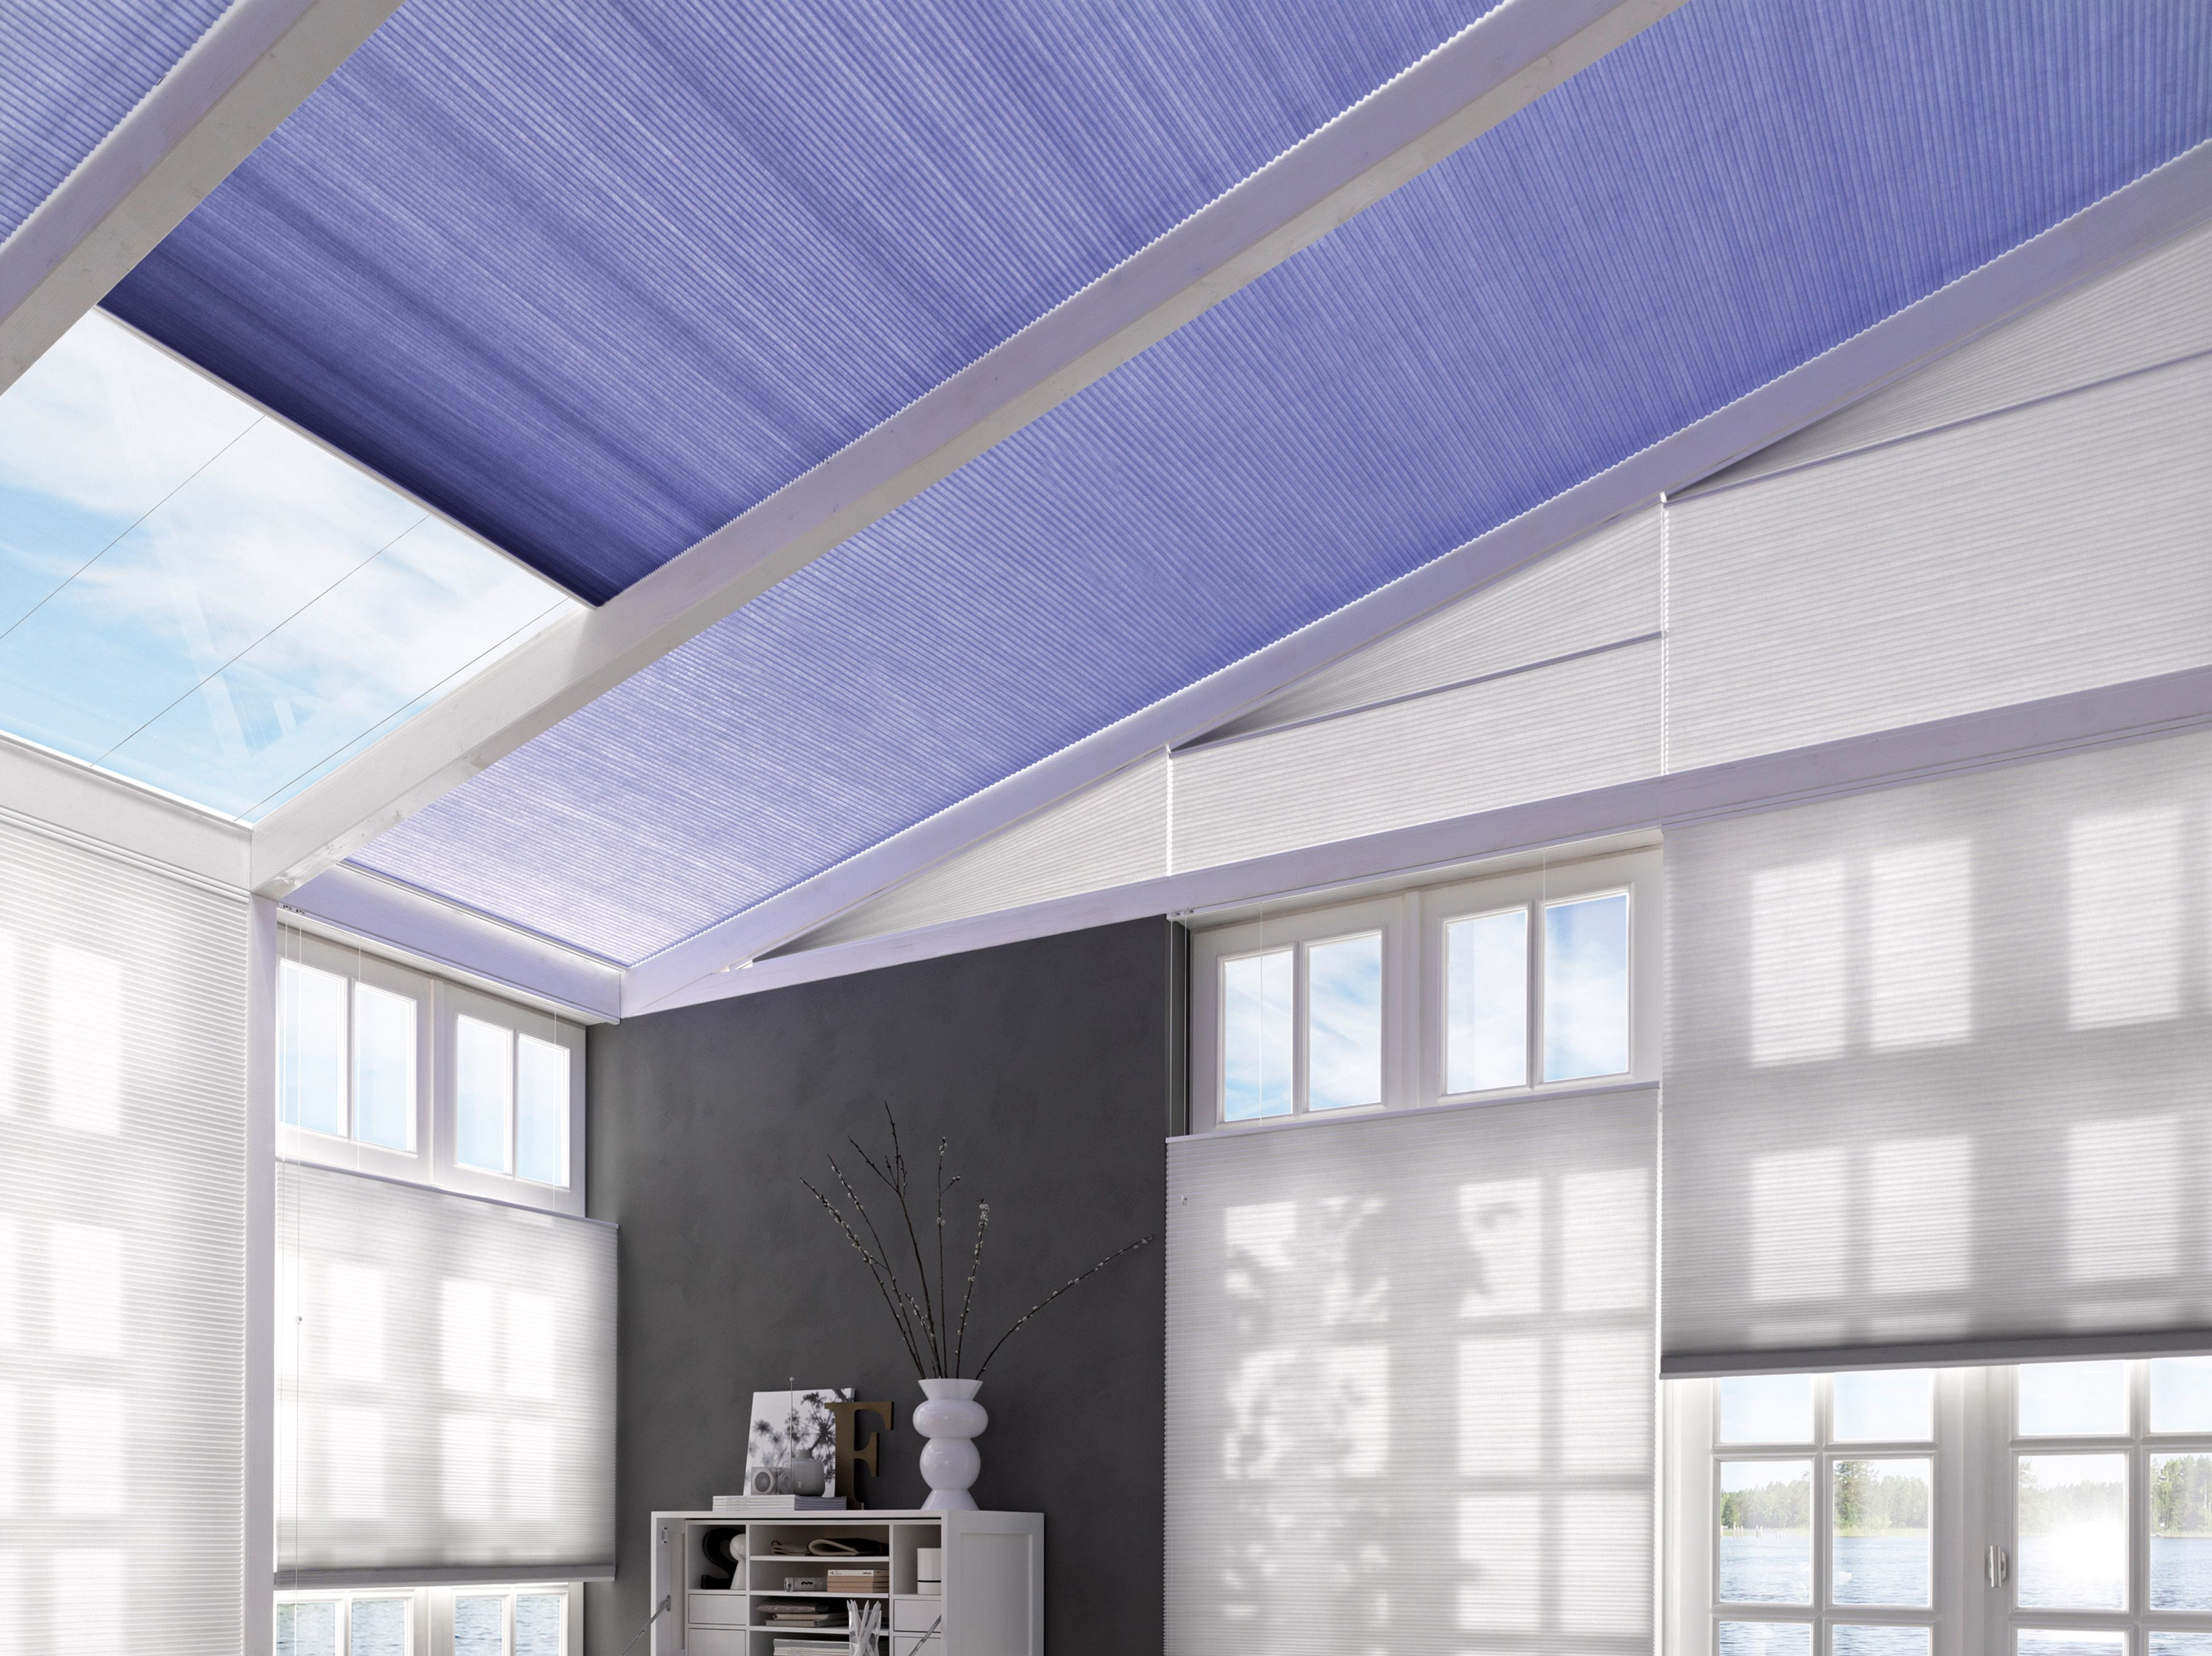 Lilac Tones For Glass Roofs Purple Blue Duette Conservatory Blinds Energy Saving Blinds Contemporary Blue Purpl Modern Window Dressing Blinds Glass Roof